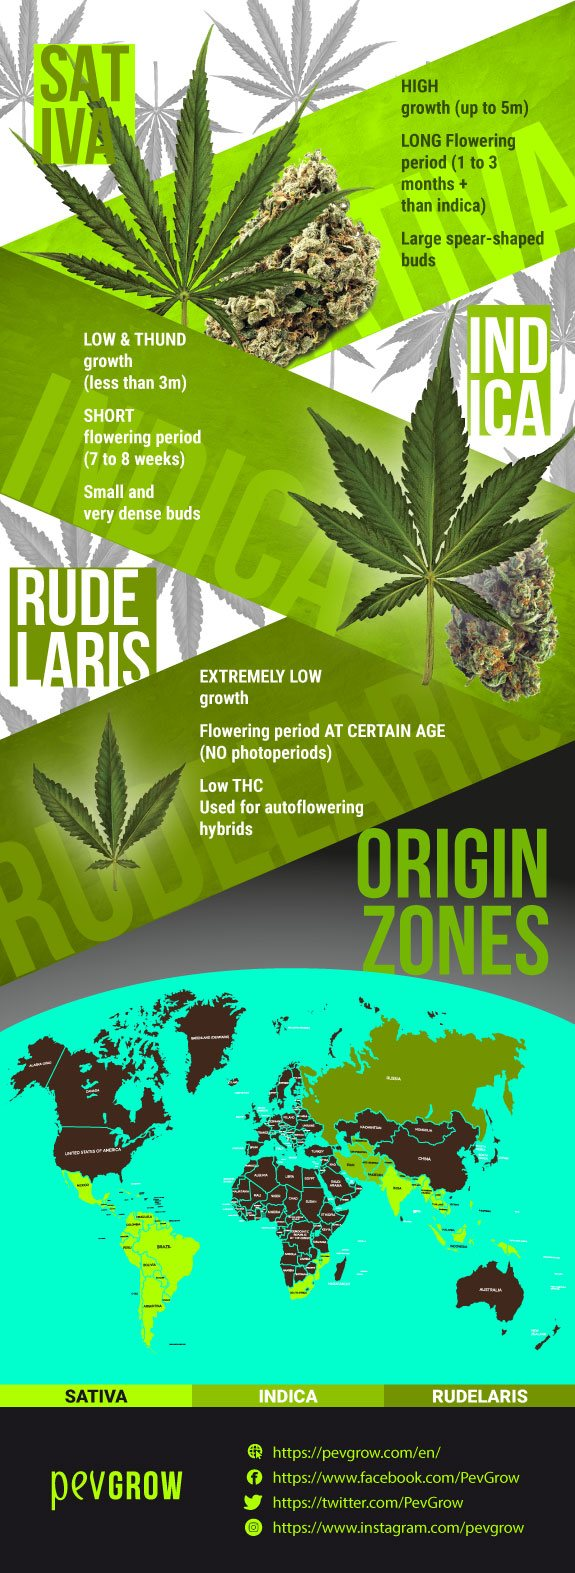 Species found within Cannabis are Cannabis sativa, Cannabis indica, and Cannabis ruderalis